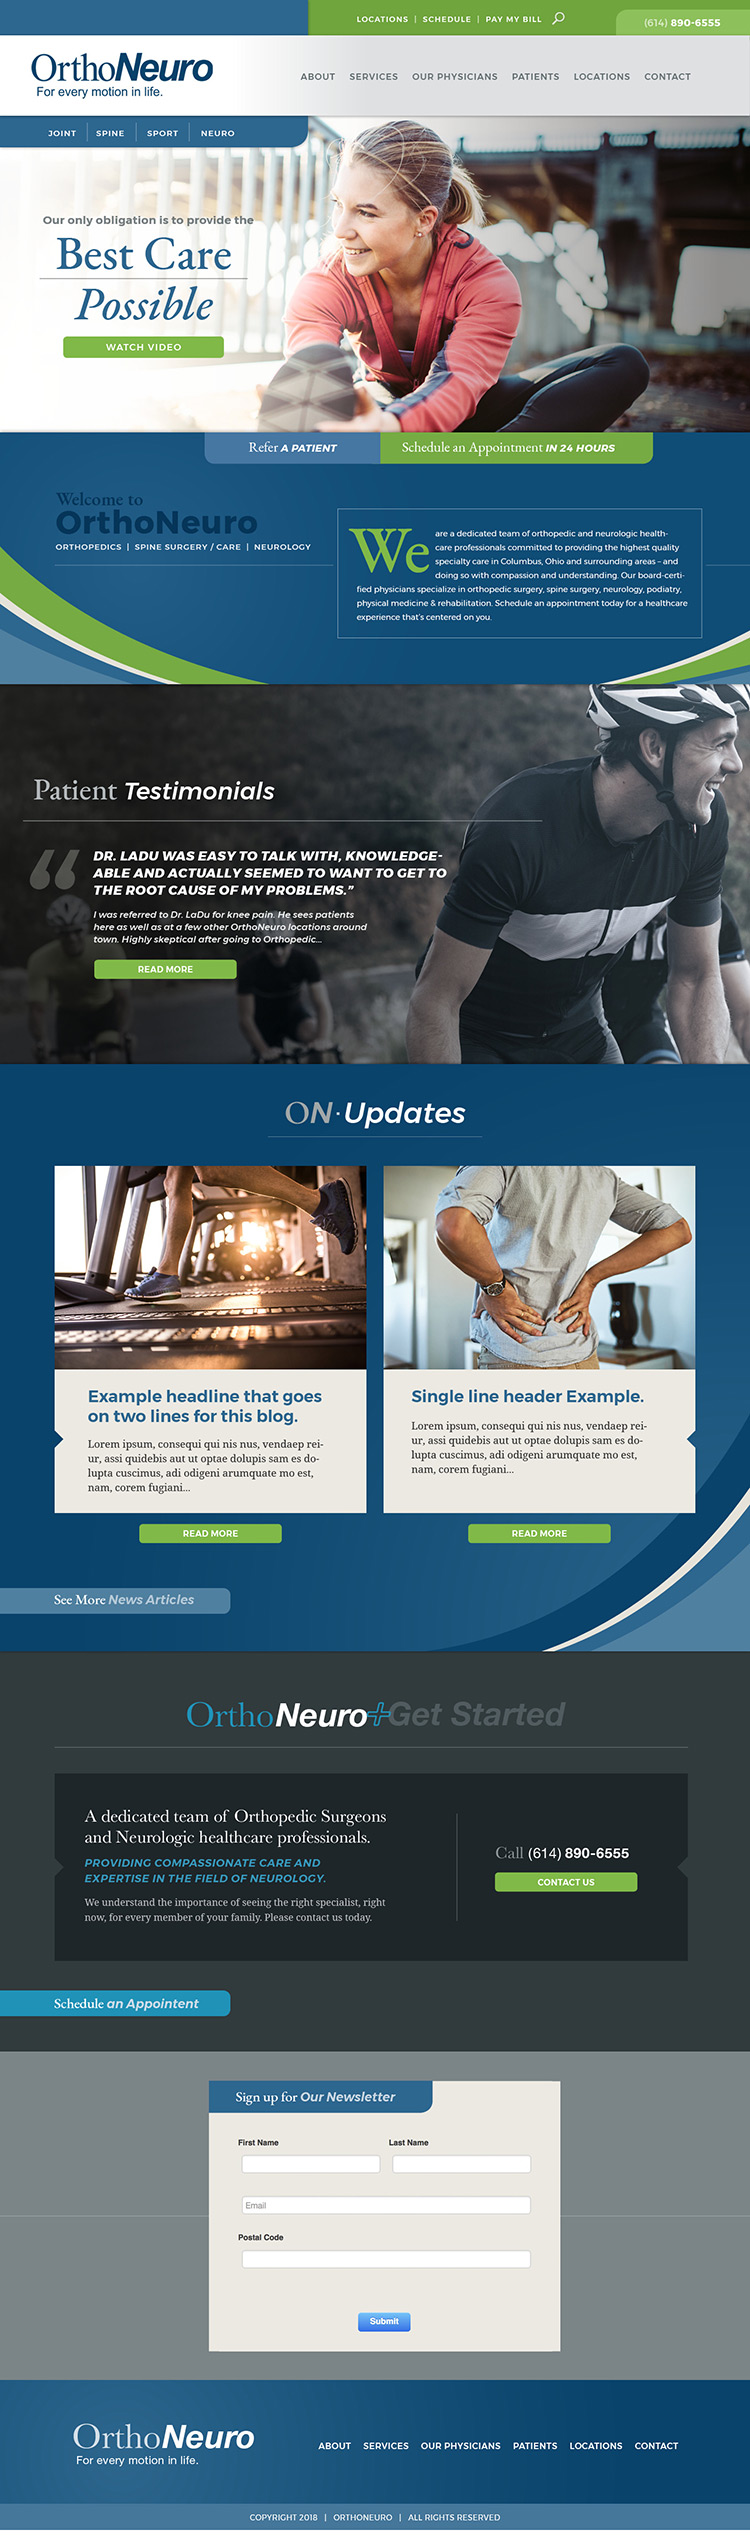 OrthoNeuro homepage design by Columbus Oh website design firm Sevell